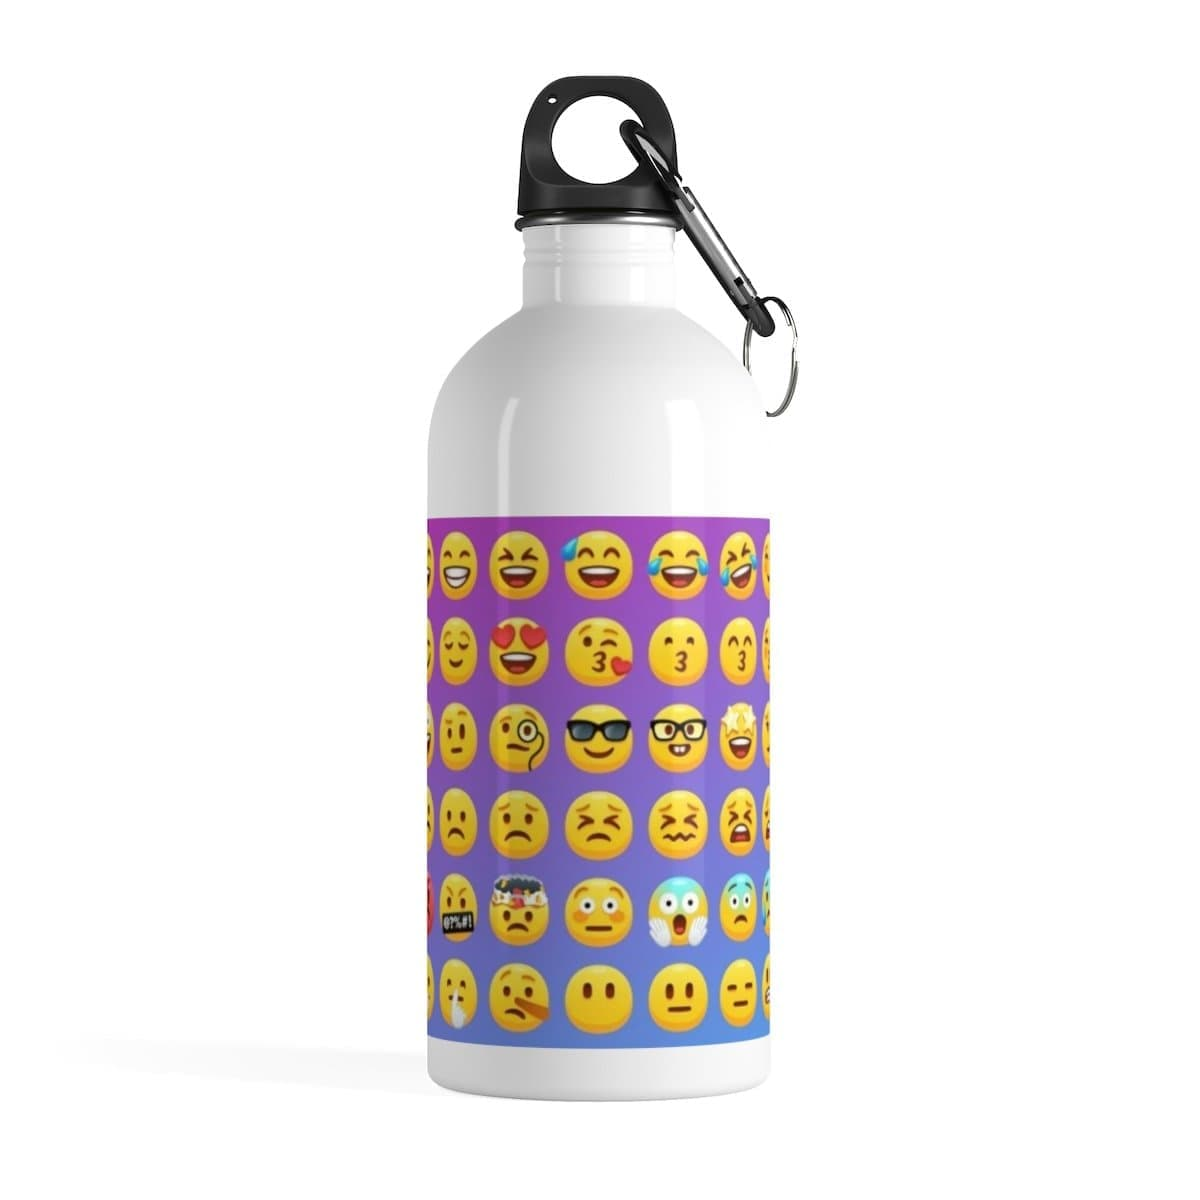 Stainless Steel Emoji Water Bottle - Merchandize.ca